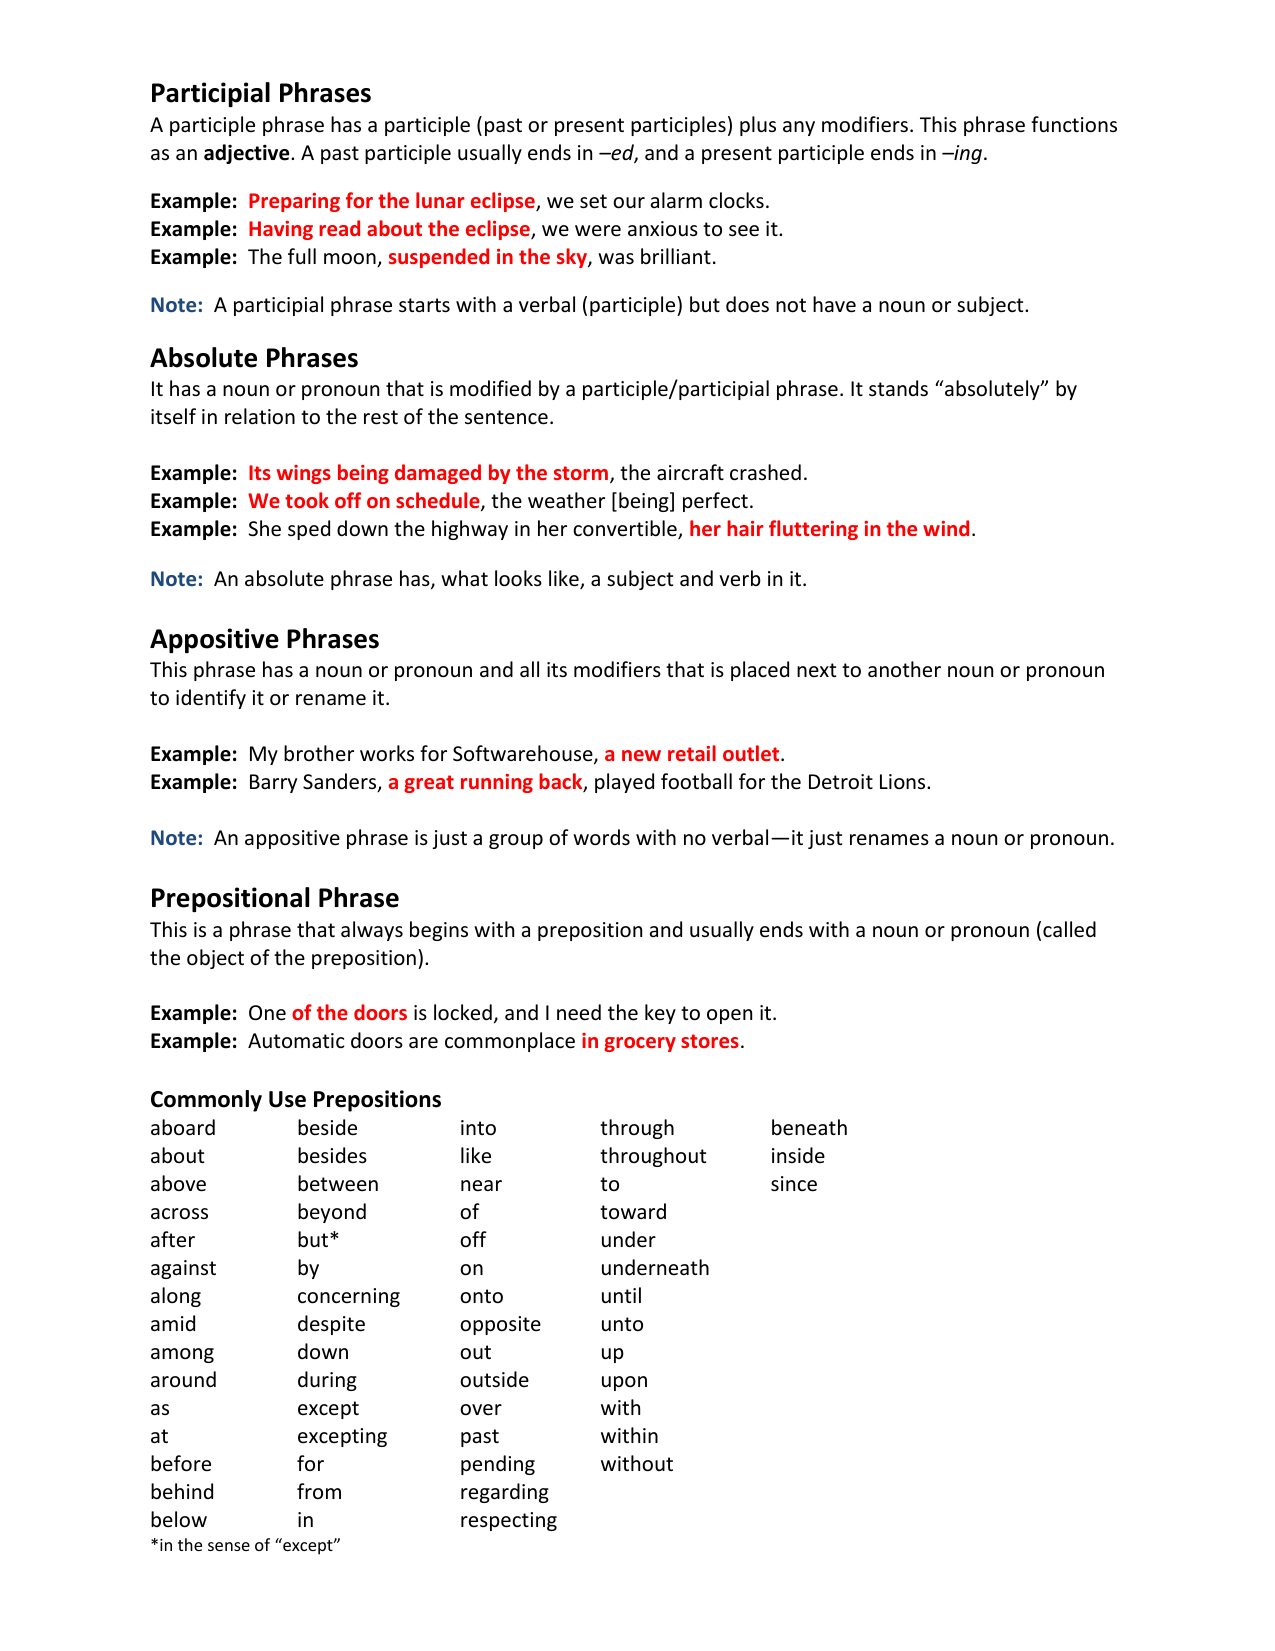 Participial Phrases Absolute Phrases Appositive Phrases